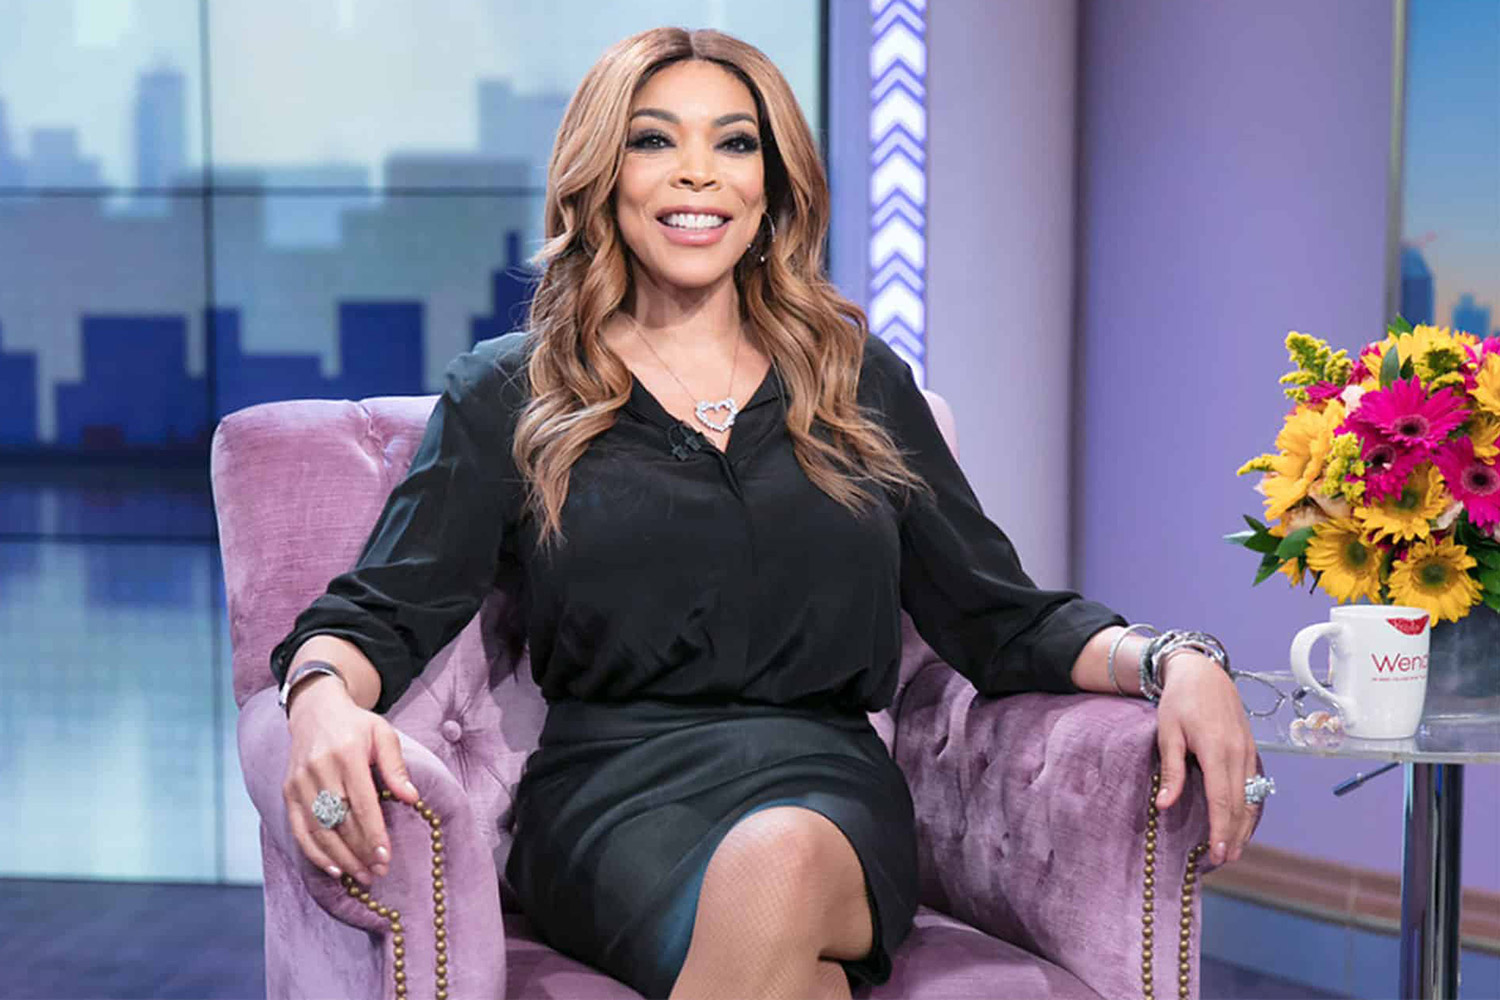 Wendy Williams Admits She Spies on Her Neighbor   PEOPLE.com